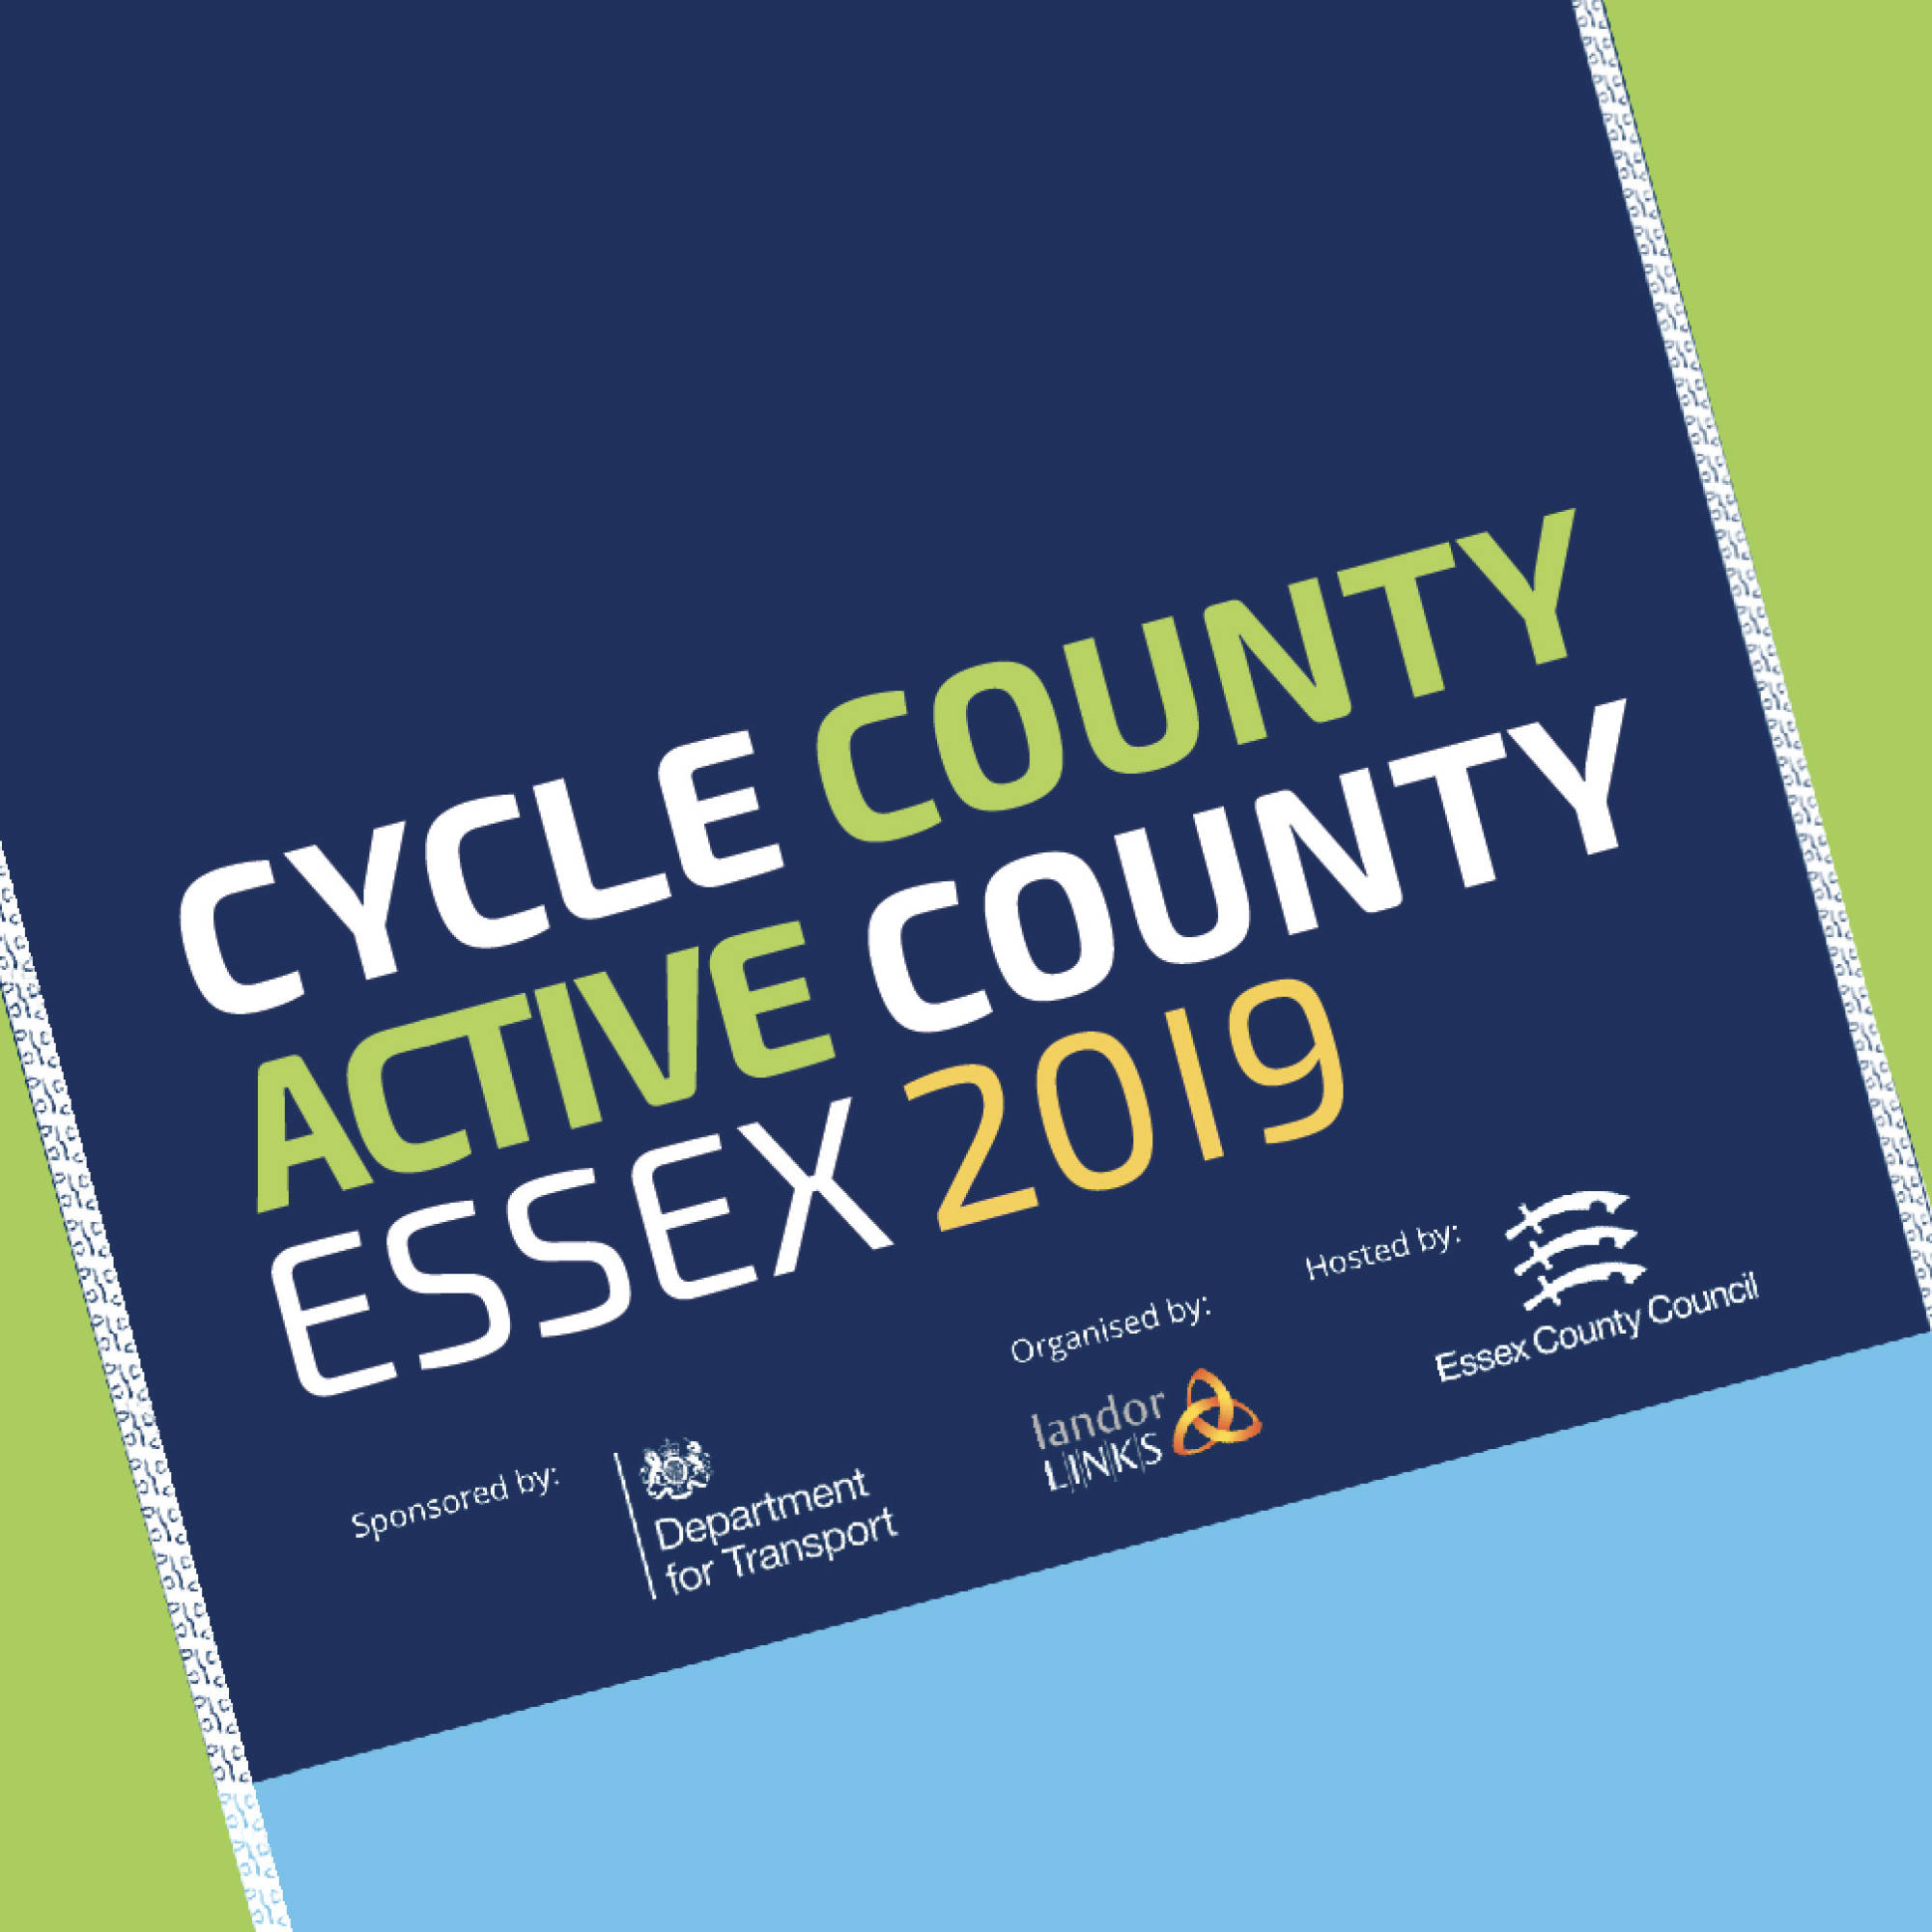 Cycle County Active County